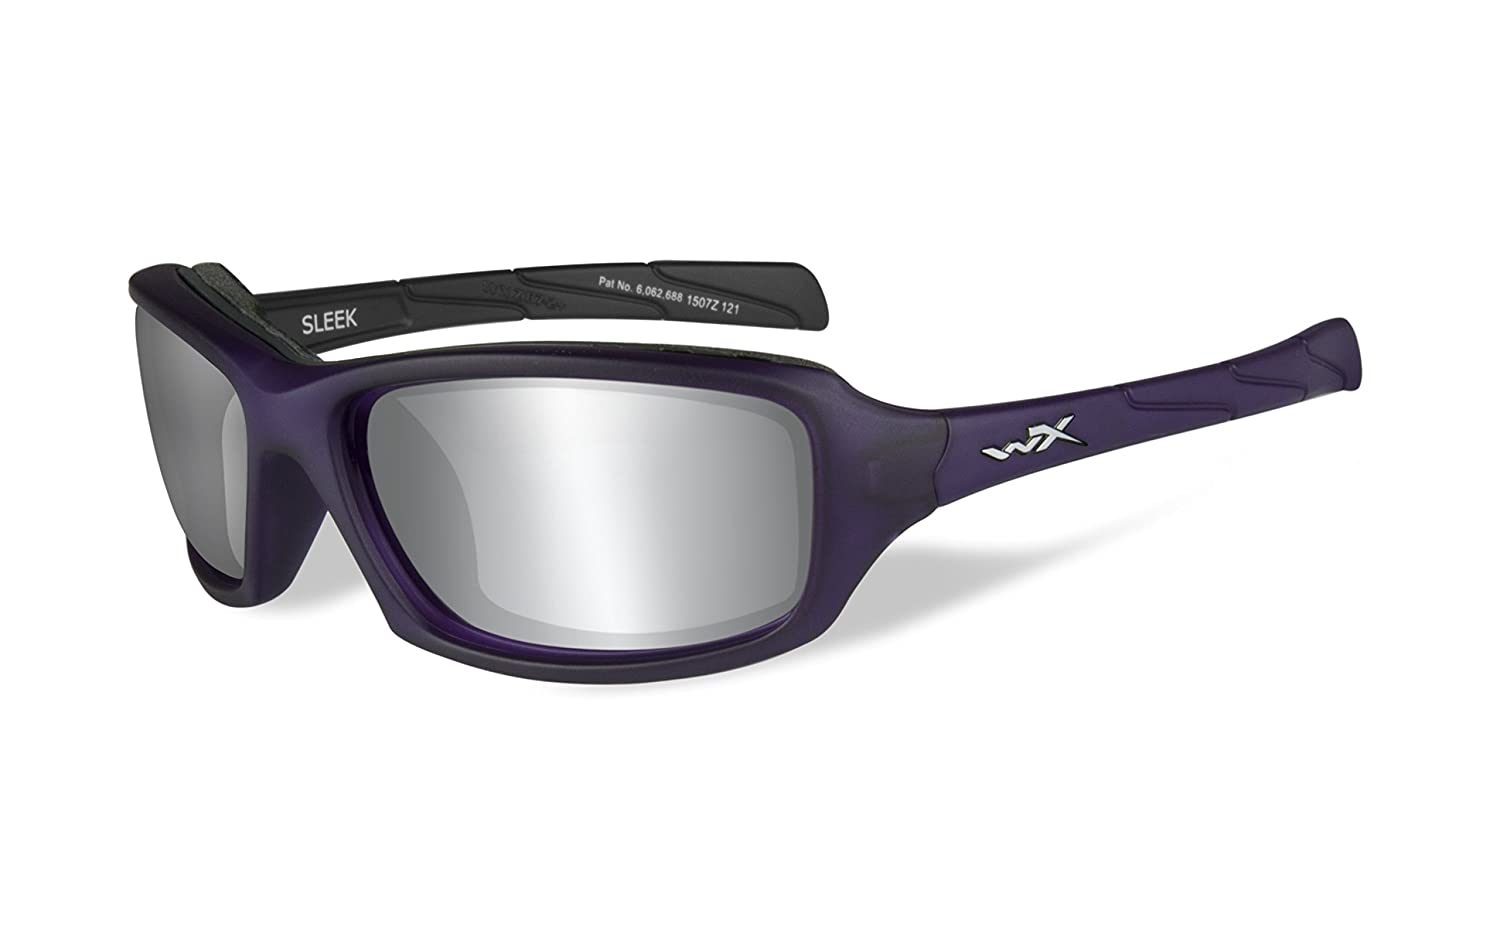 5f6b039b17f Amazon.com  Wiley X Unisex Sleek Grey Lens Matte Protective Sunglasses  Black One Size  Sports   Outdoors